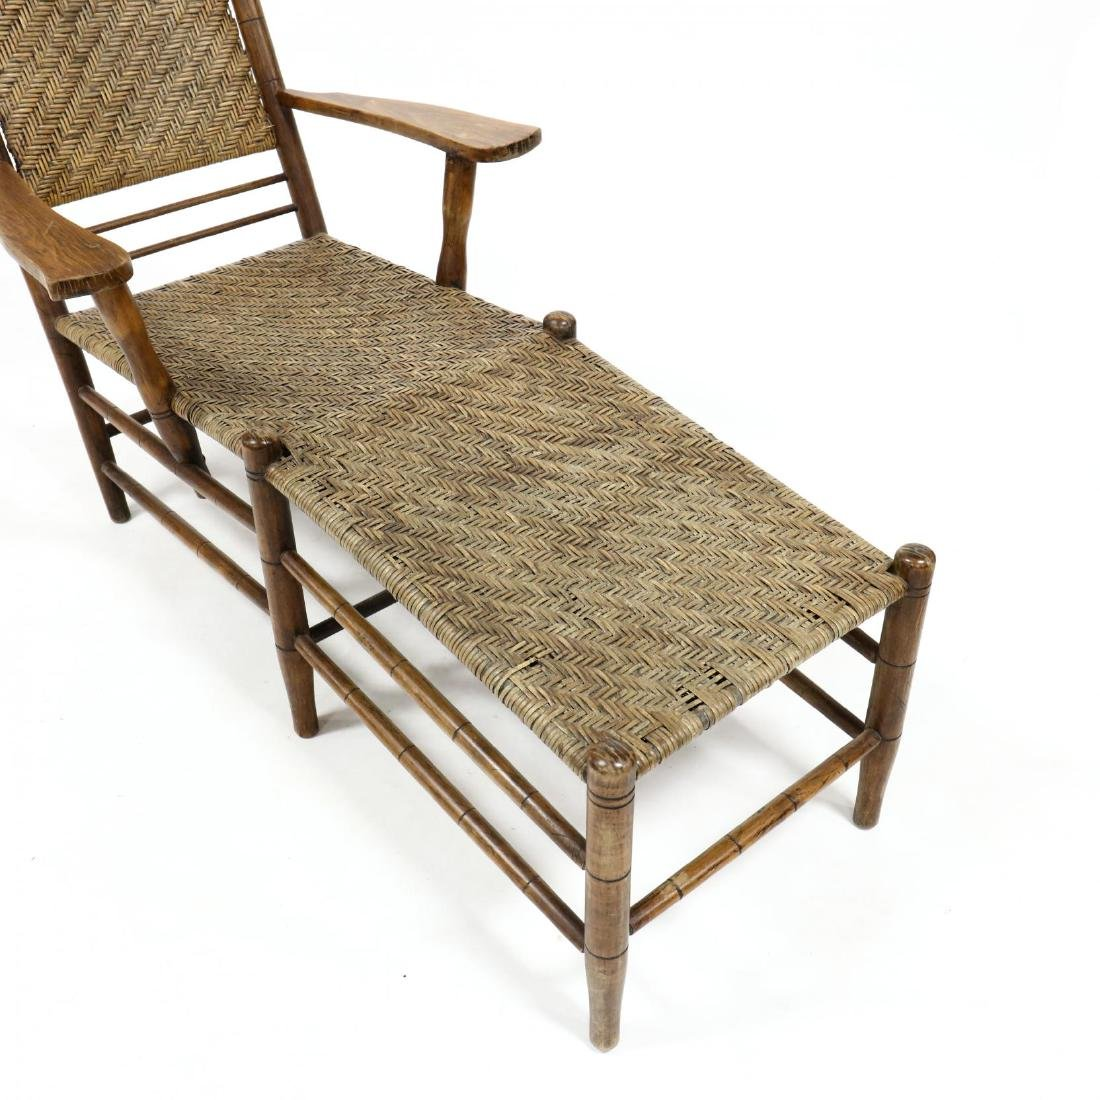 American Plantation Lounge Chair - 2